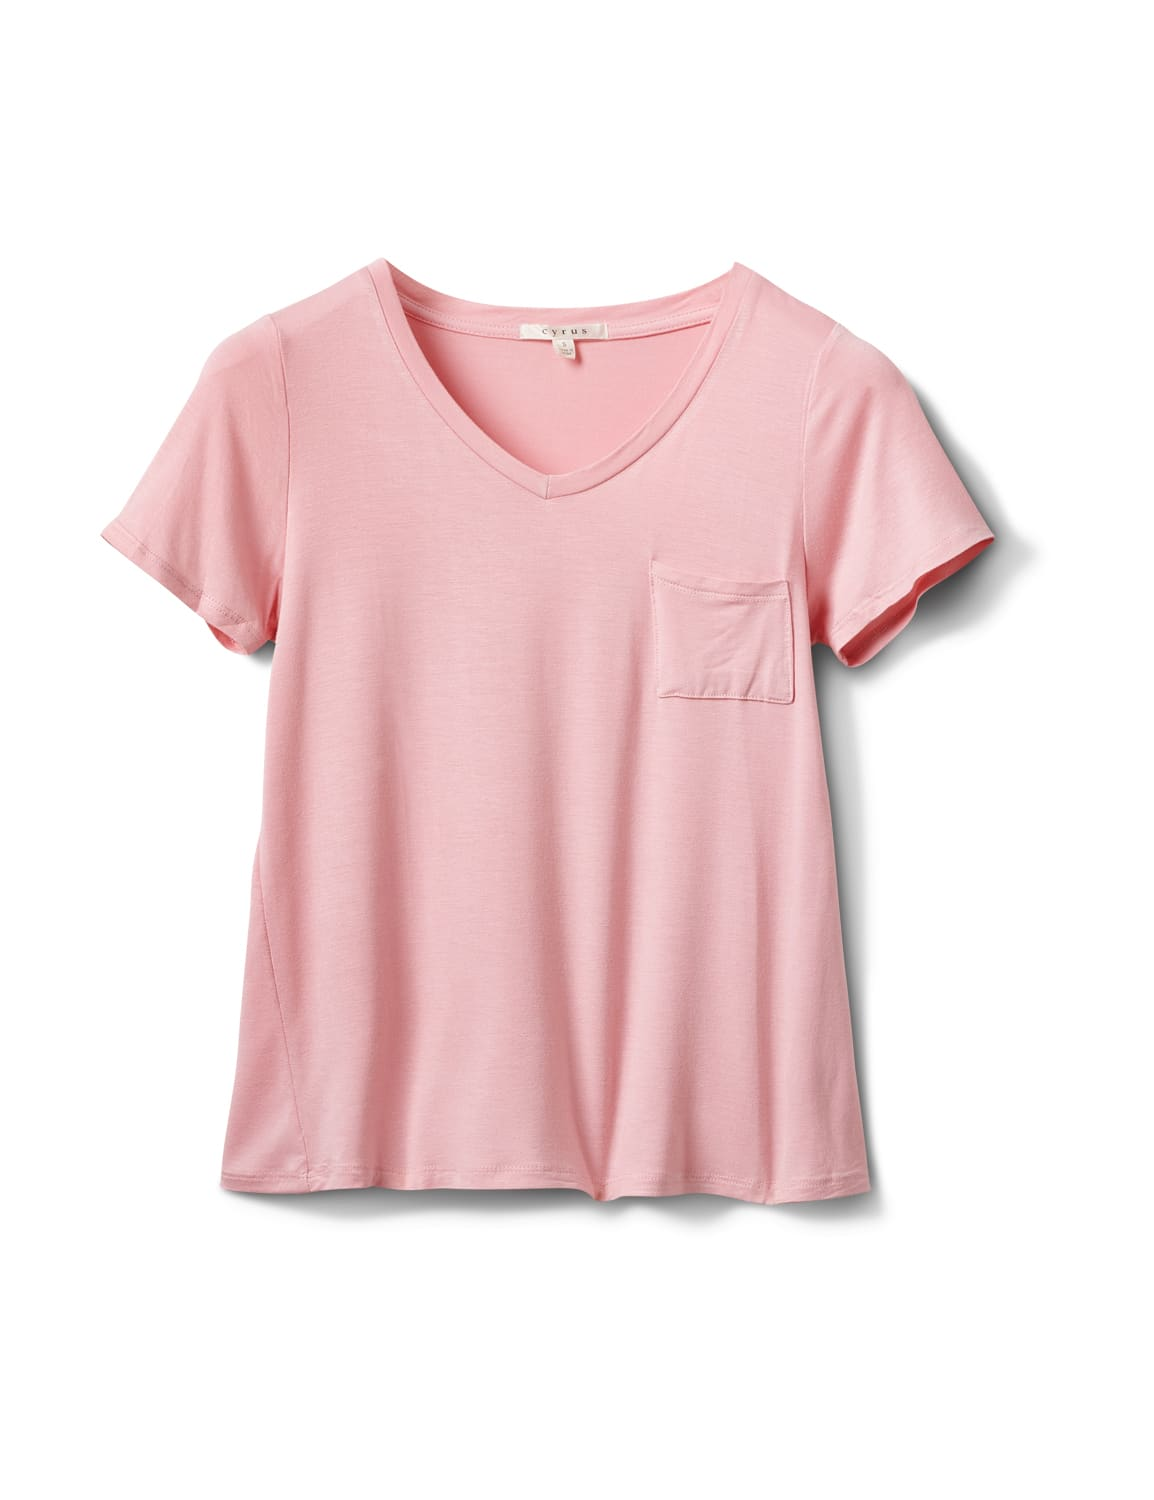 Rayon Span V-Neck Tee - Blush - Front